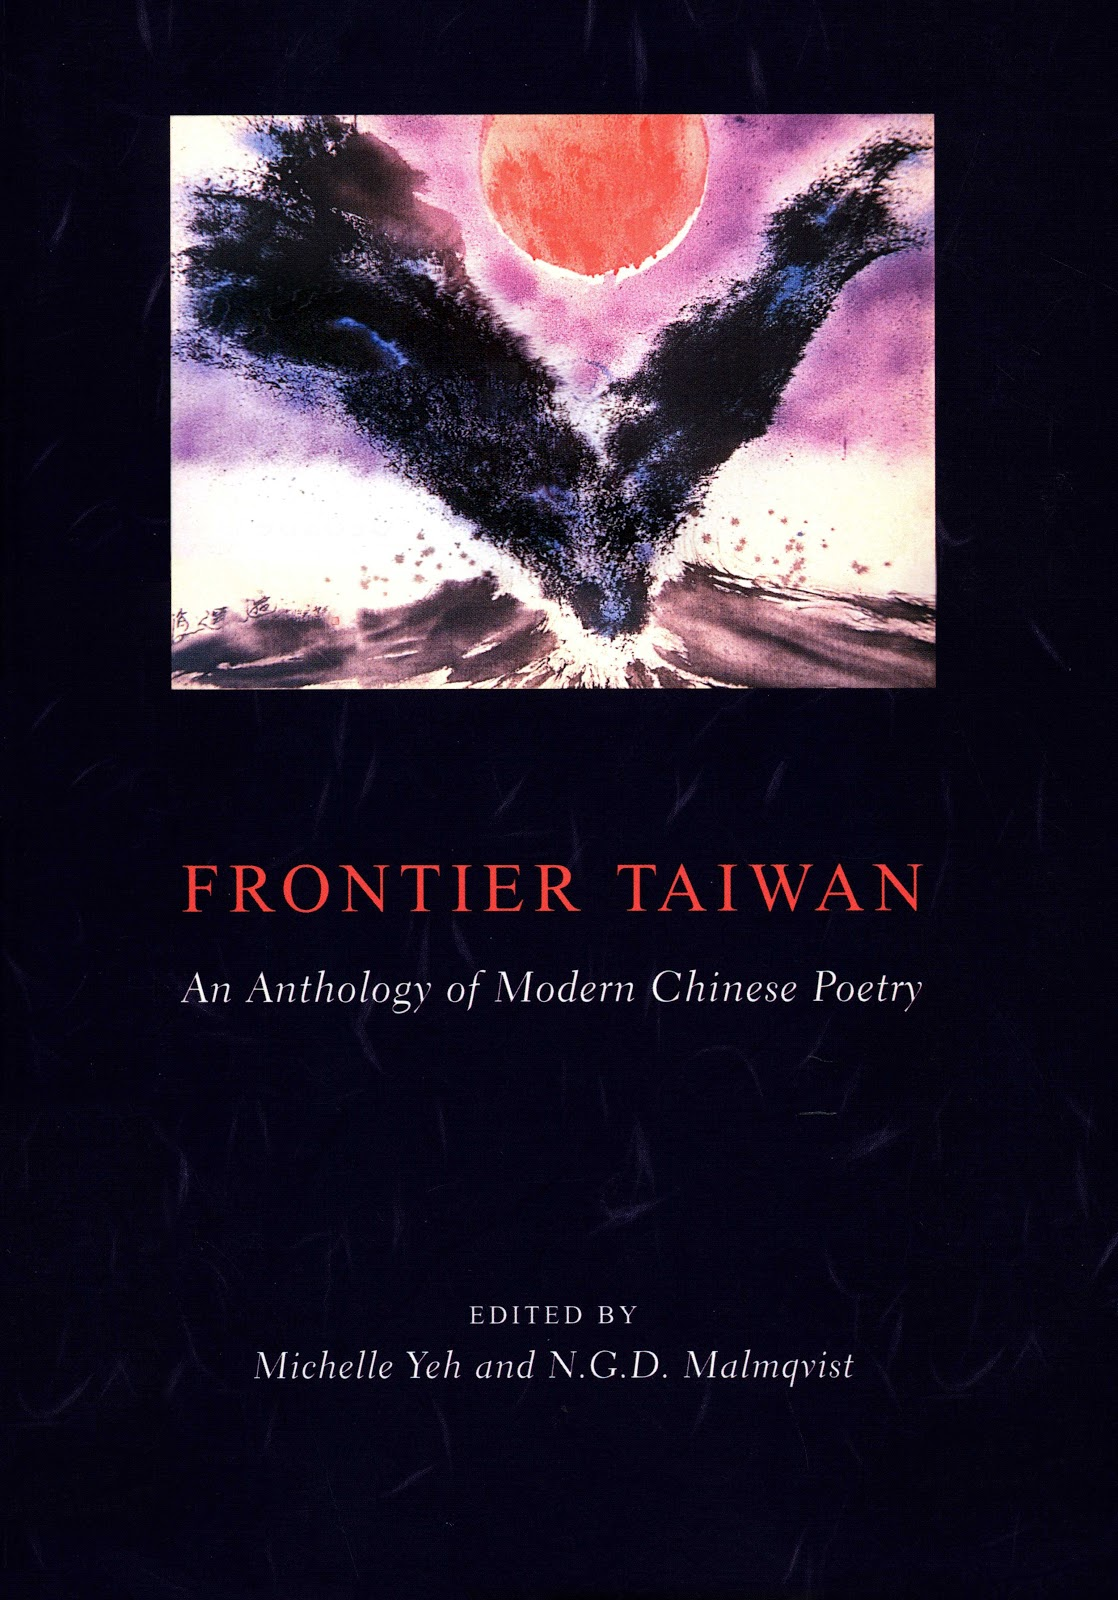 Frontier Taiwan: An Anthology of Modern Chinese Poetry (2001)